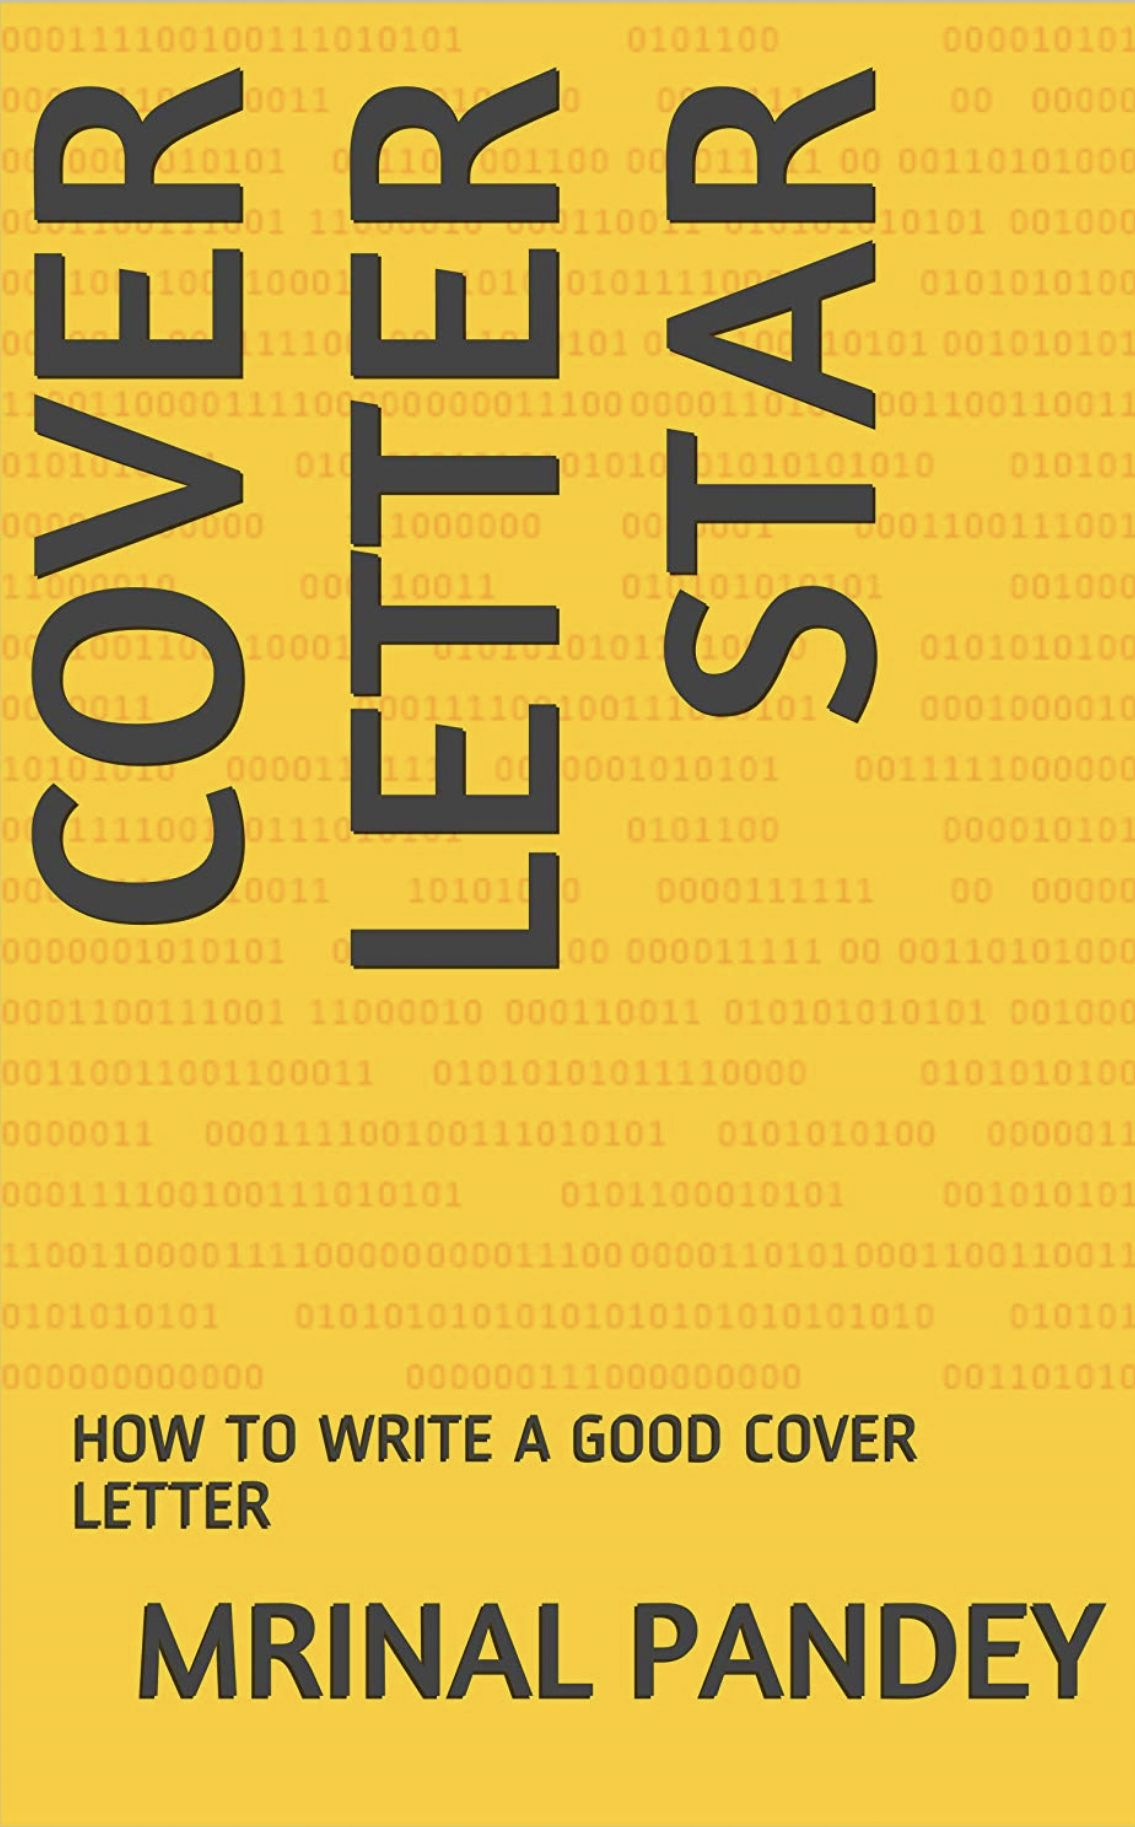 A GOOD cover letter greatly enhances your chances of